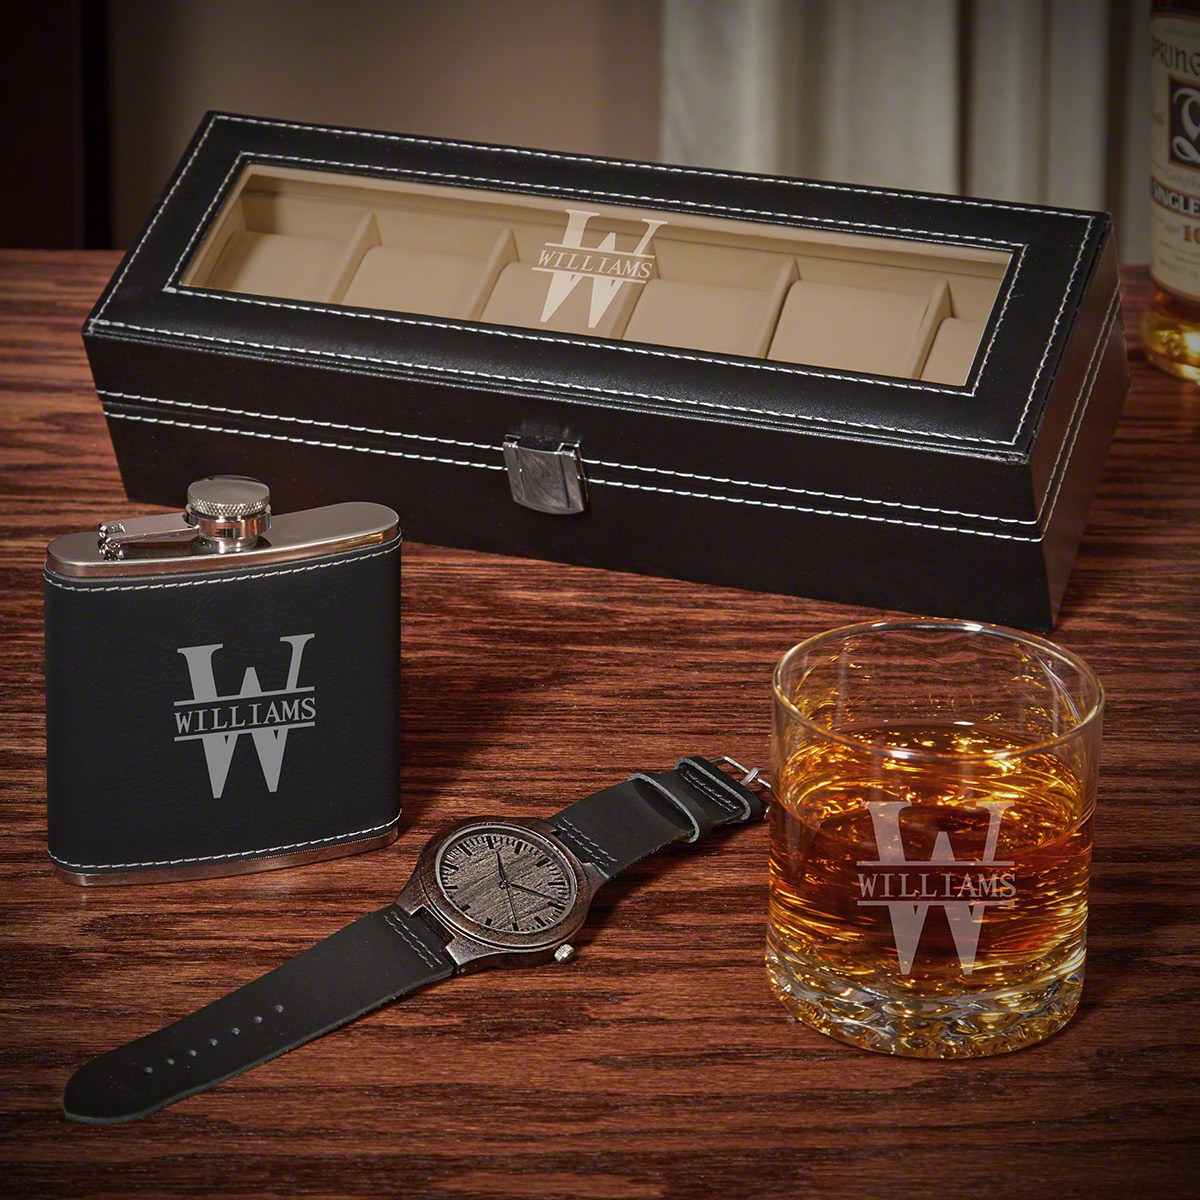 Oakmont Watch Case Gift Set of Personalized Gifts for Him